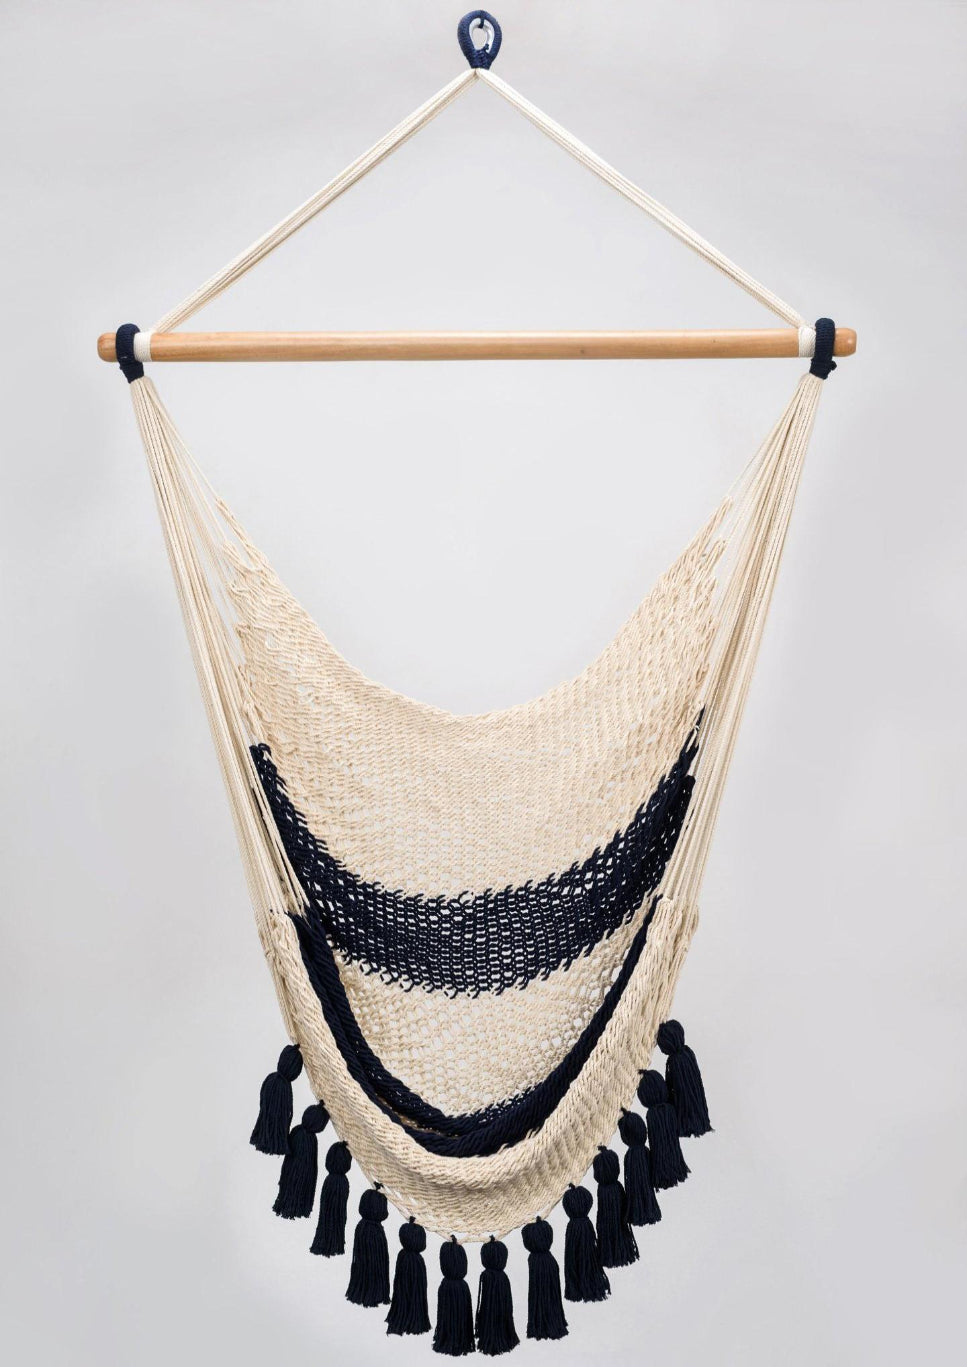 Made to Order Cotton Hammock Swings